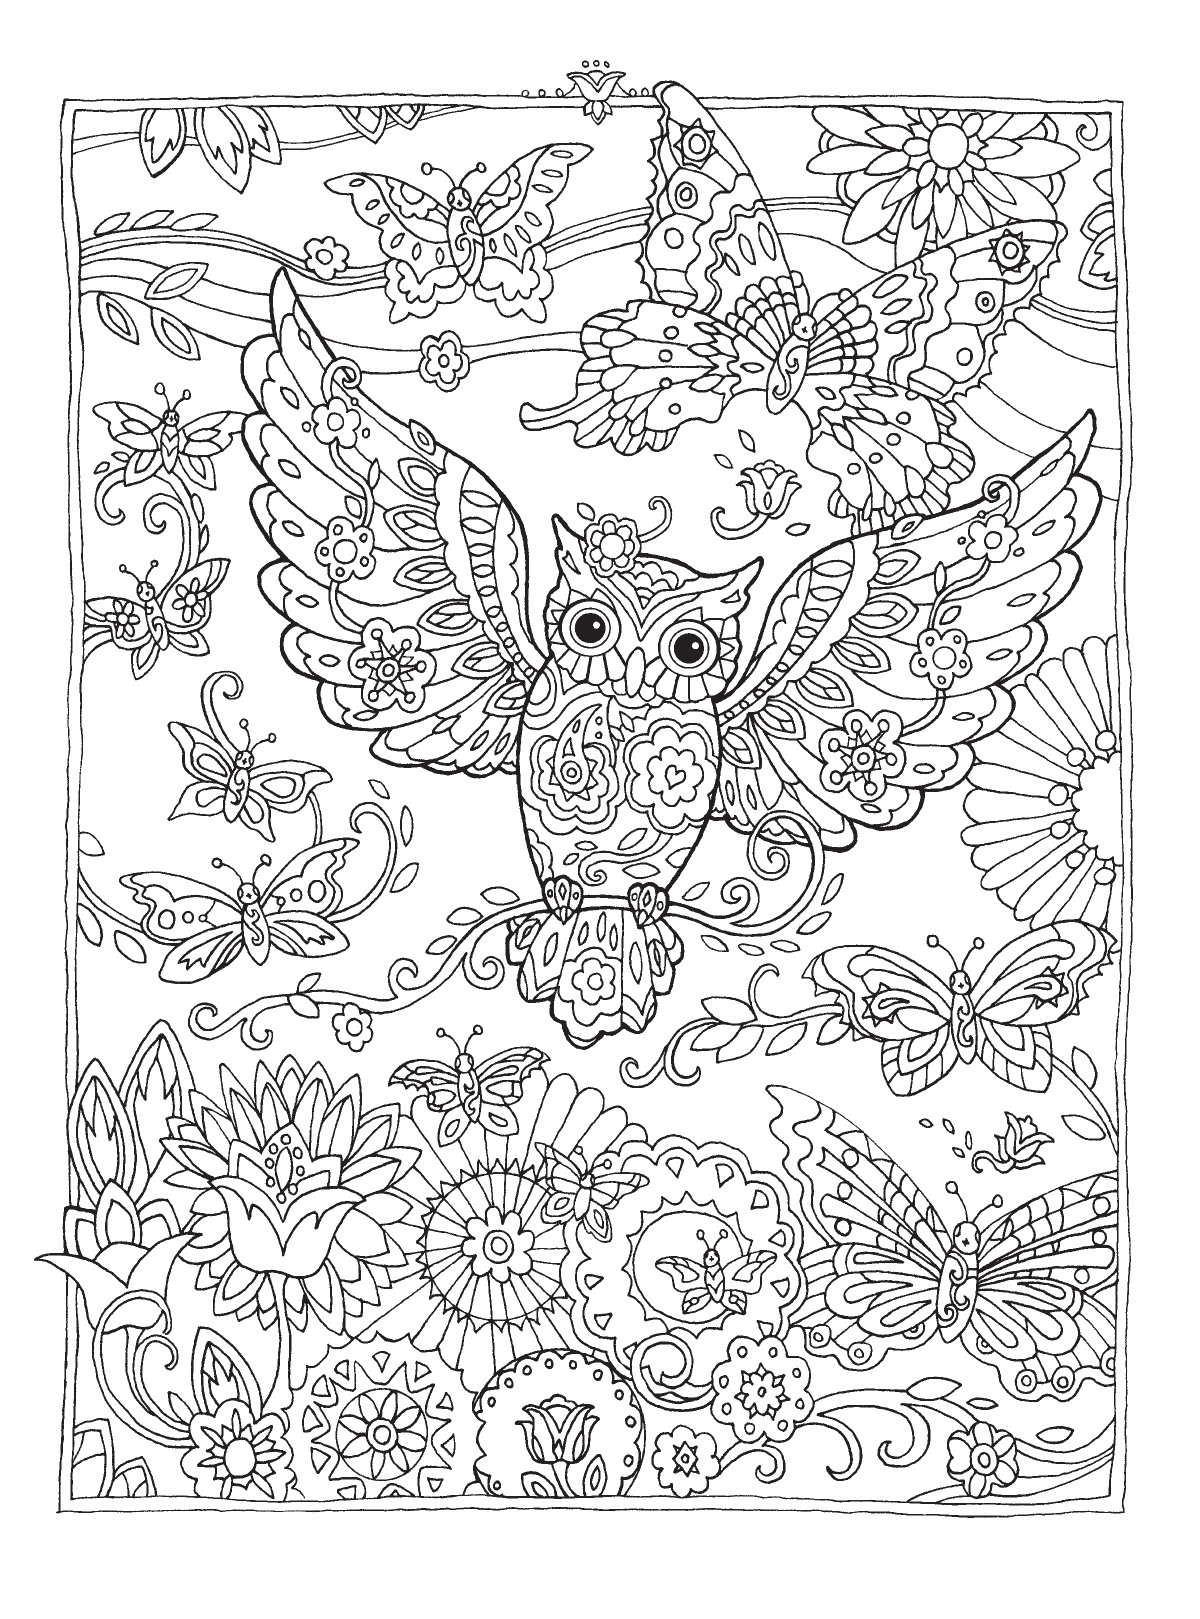 Free coloring pages for kids holidays cartoon characters alphabets and printables that you can print out and color at home